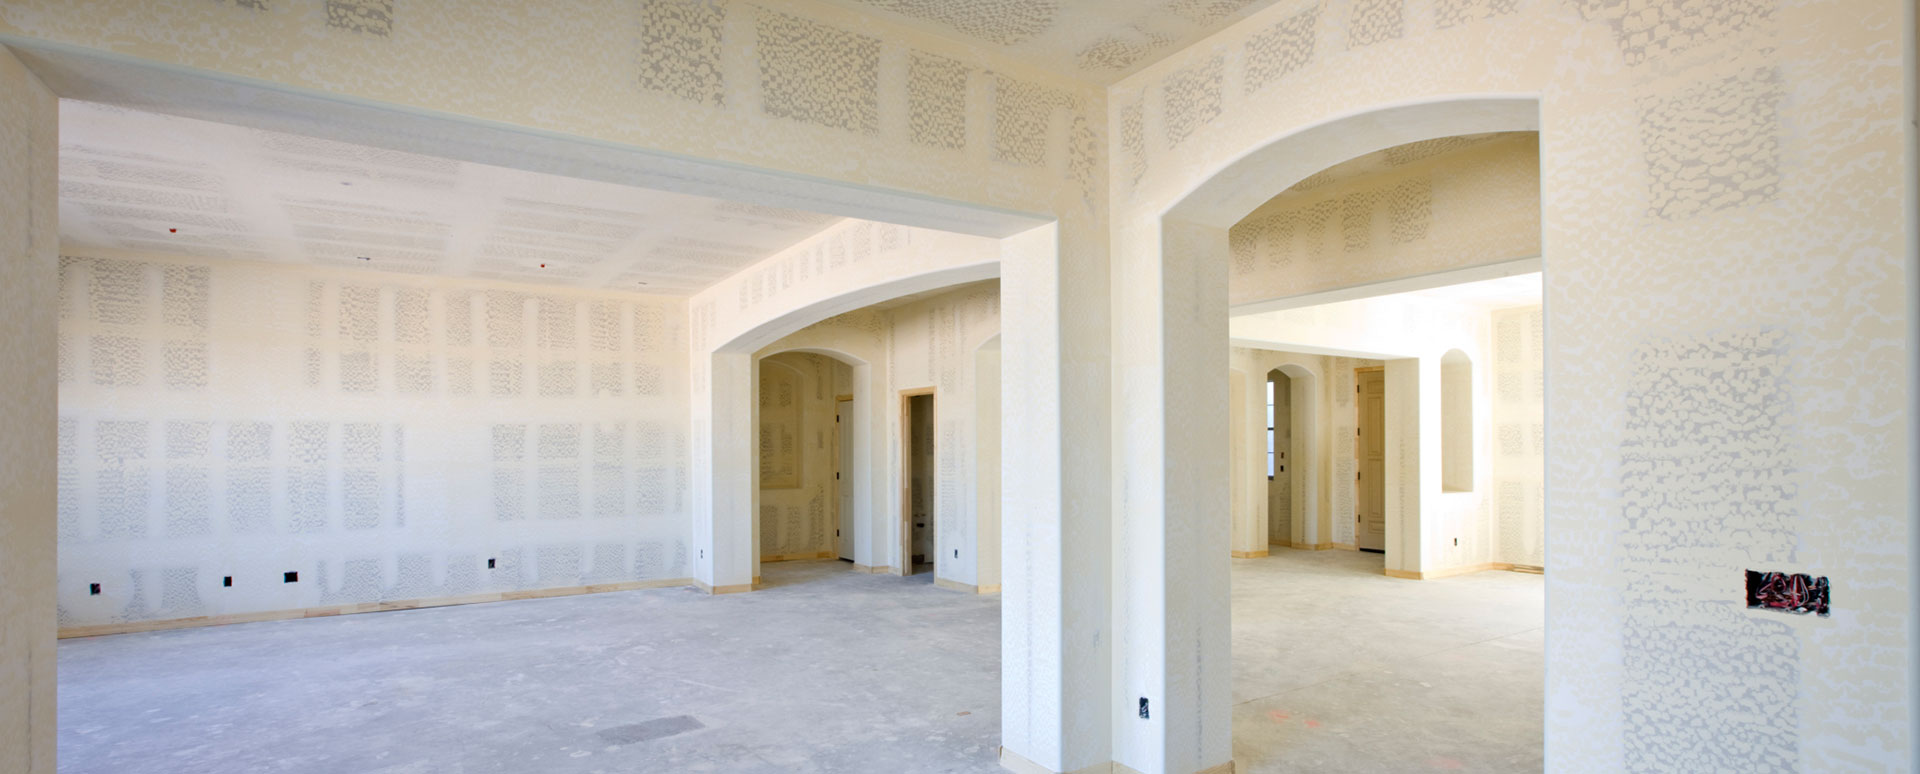 Home los angeles drywall drywall repair and drywall service for Interior stucco ceiling repair